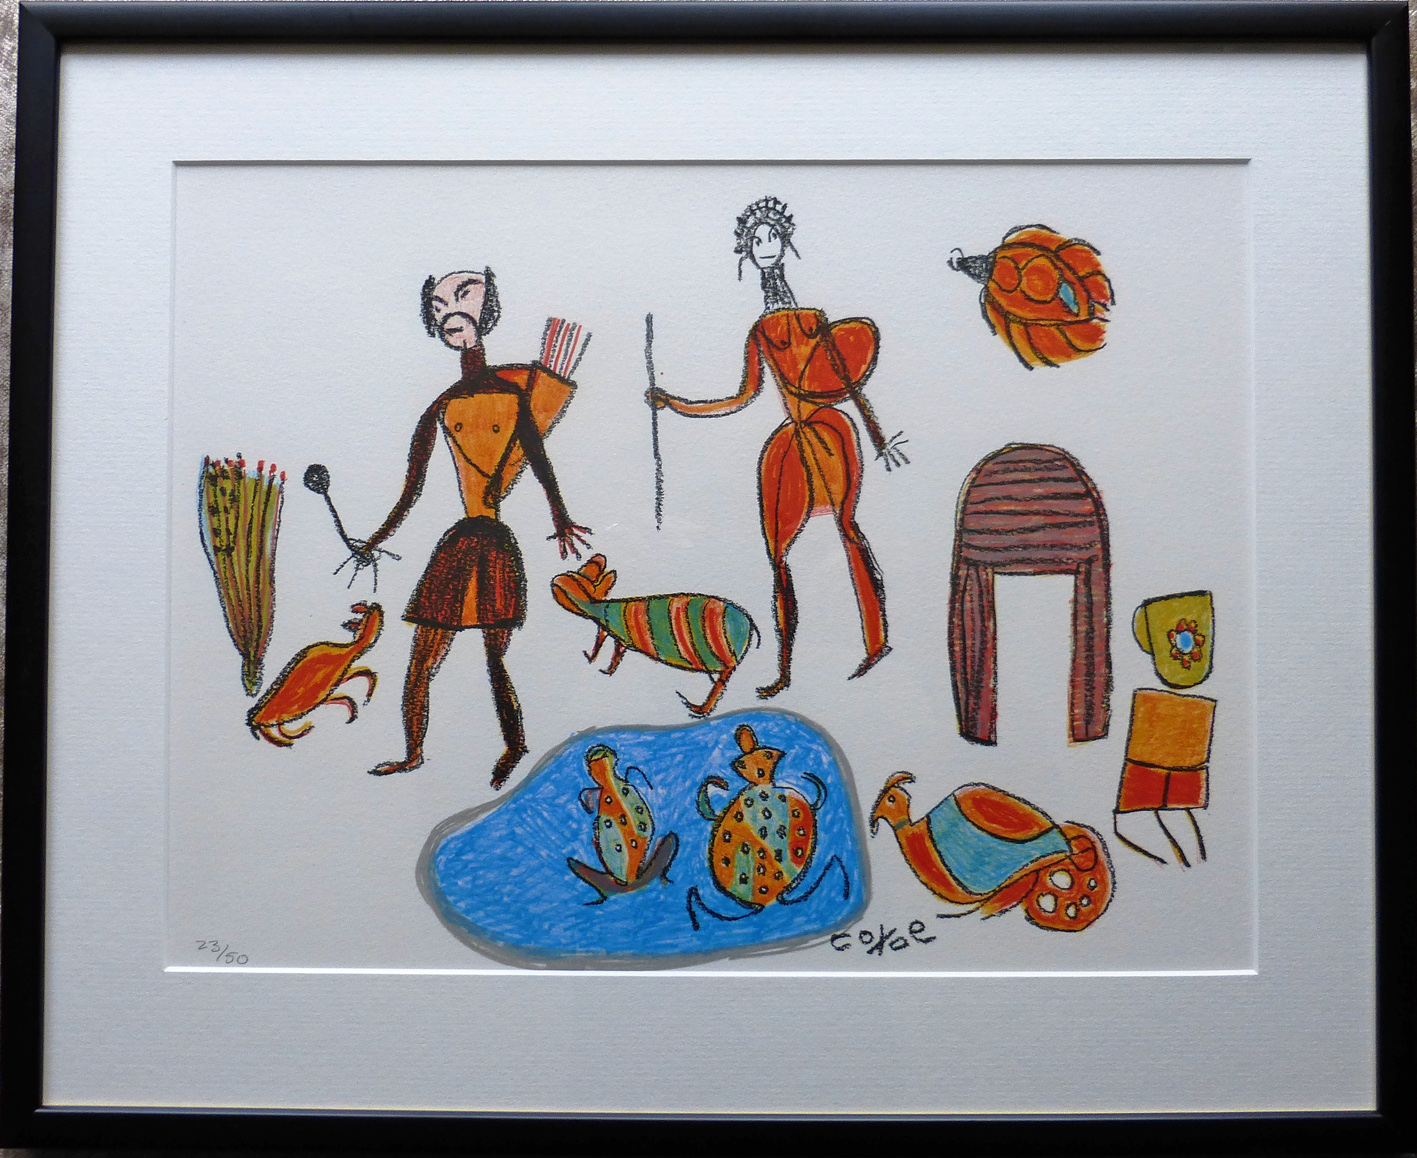 African art. Limited edition colour lithograph of people hunting and gathering